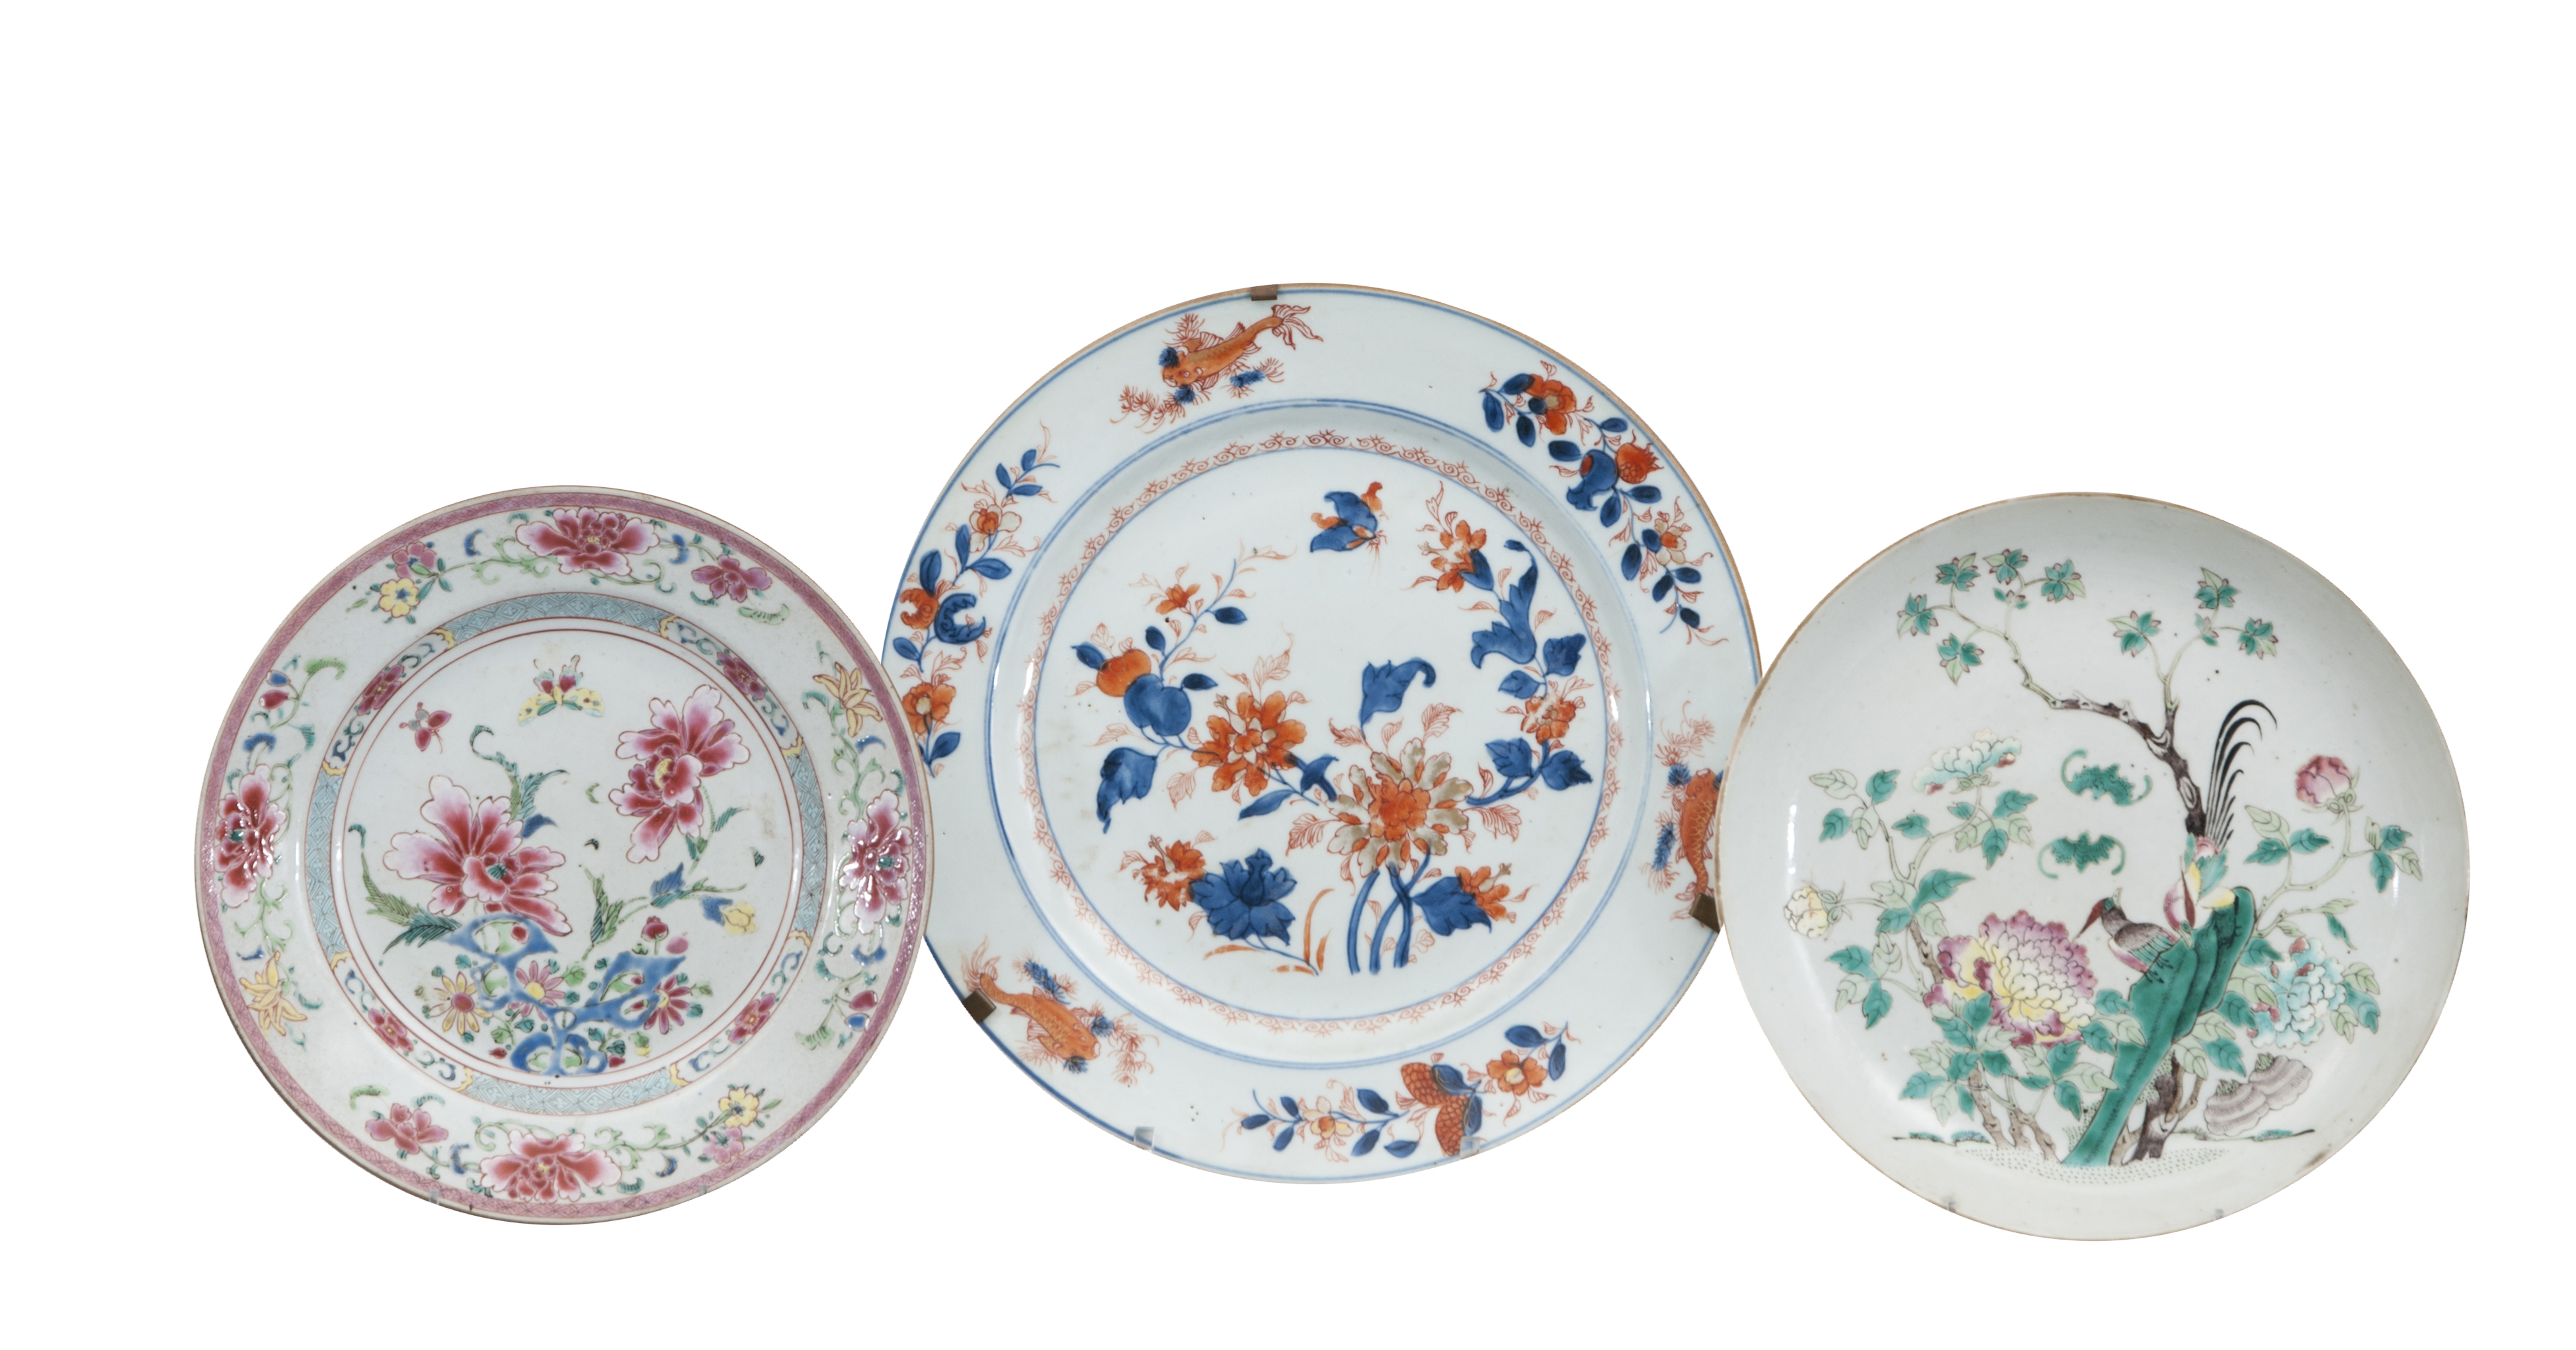 A set of 3 plates